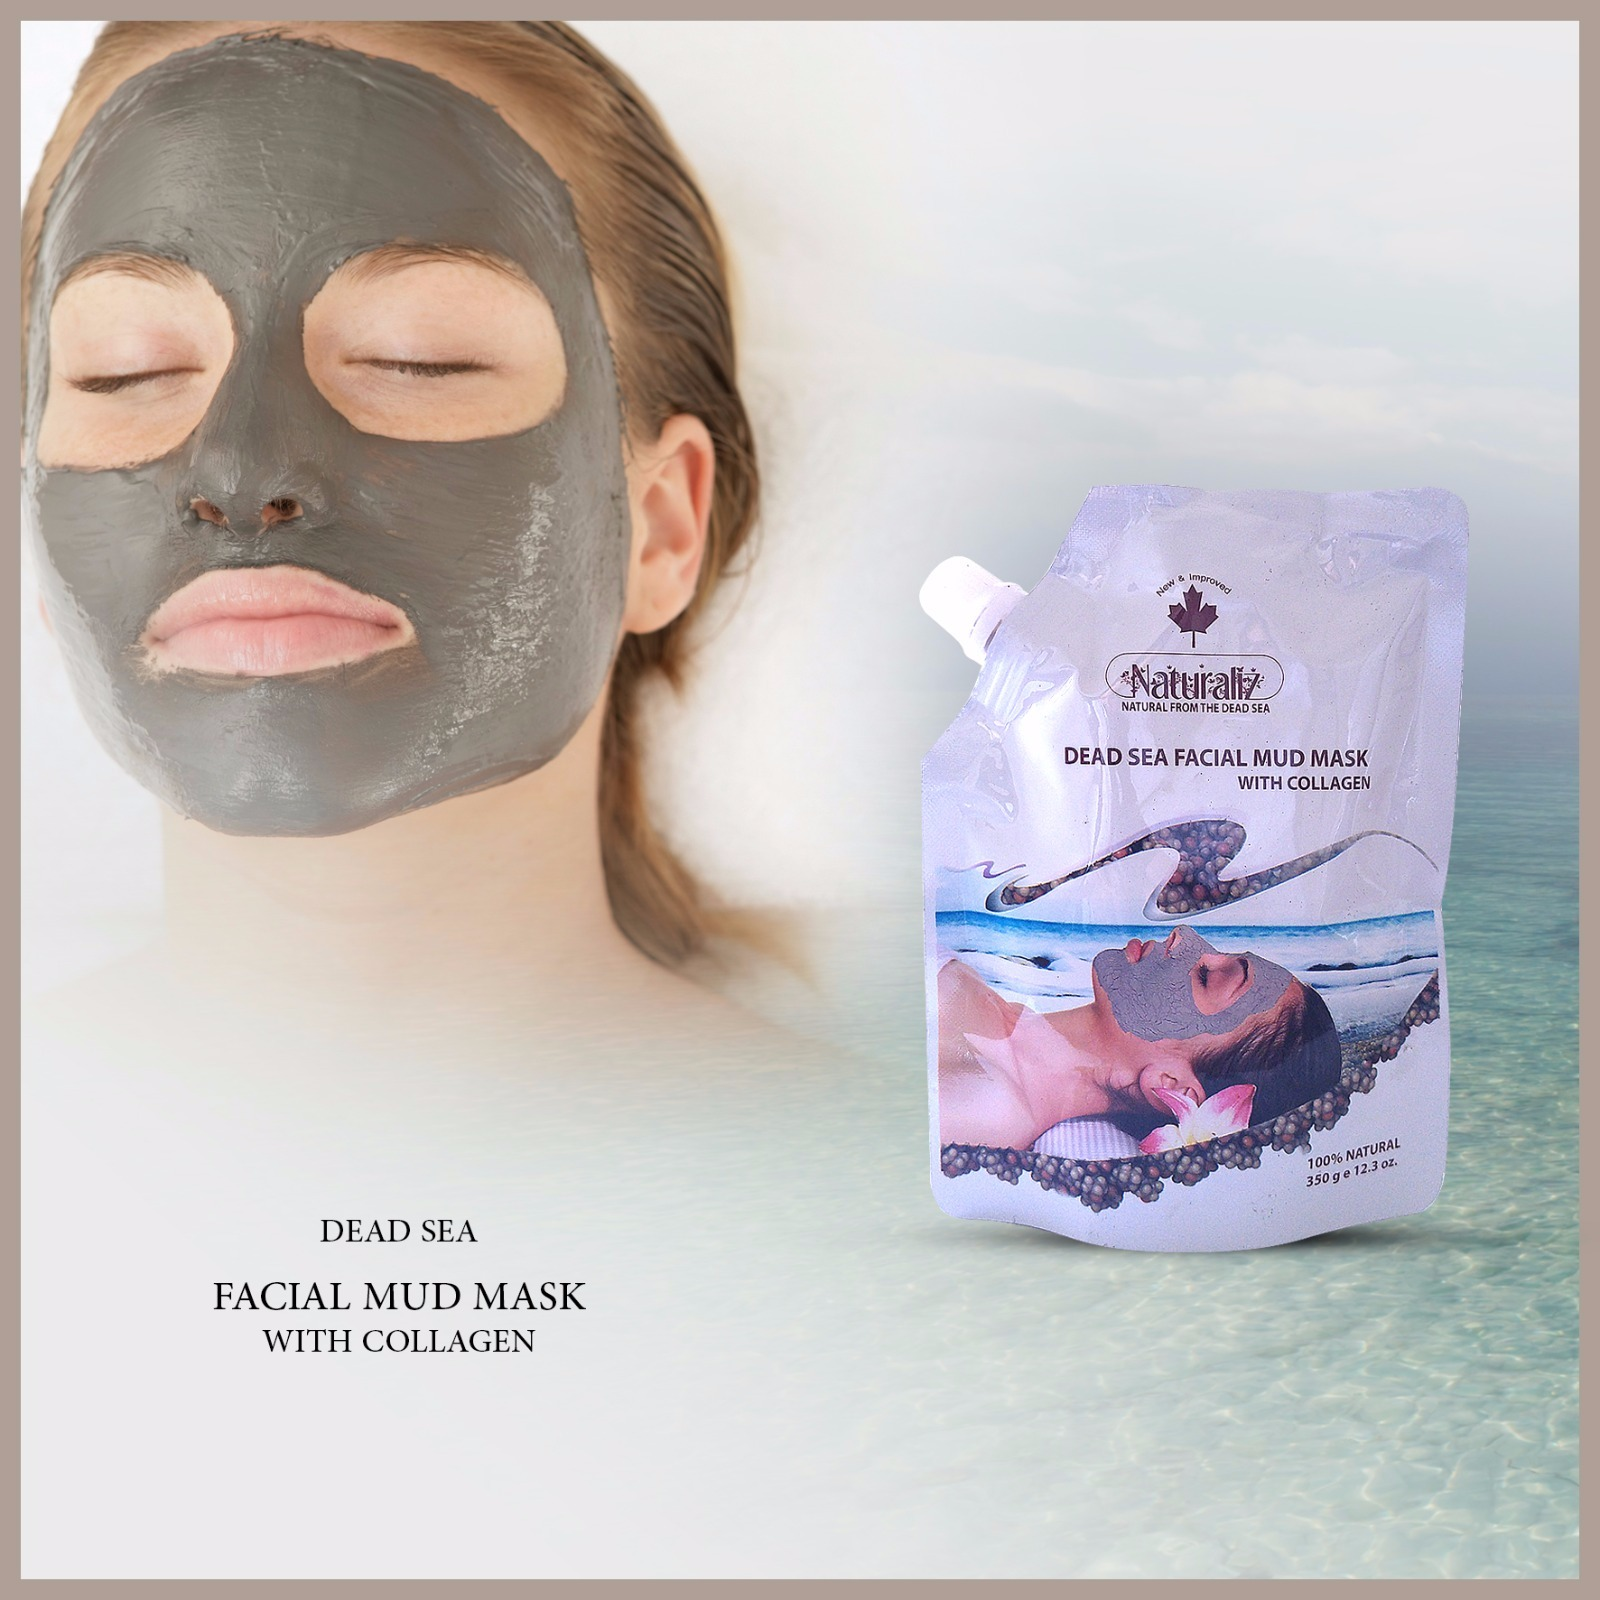 Facial Mud Mask with Collagen